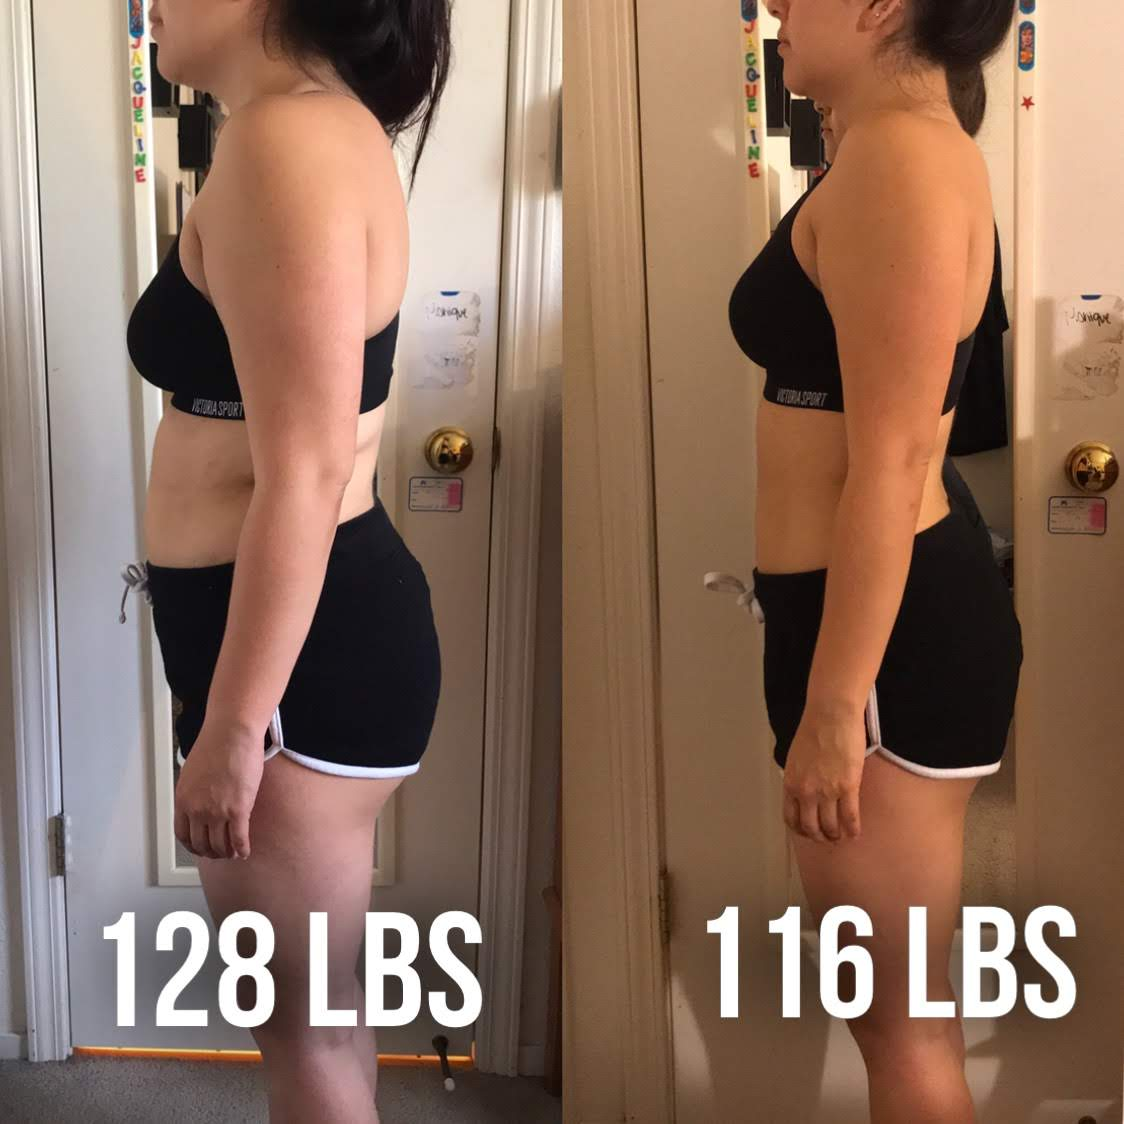 8 Week Nutrition - Jaqueline M. works a full time job, and also goes to SFSU for school. Her cravings always get the best of her, so I dieted her through